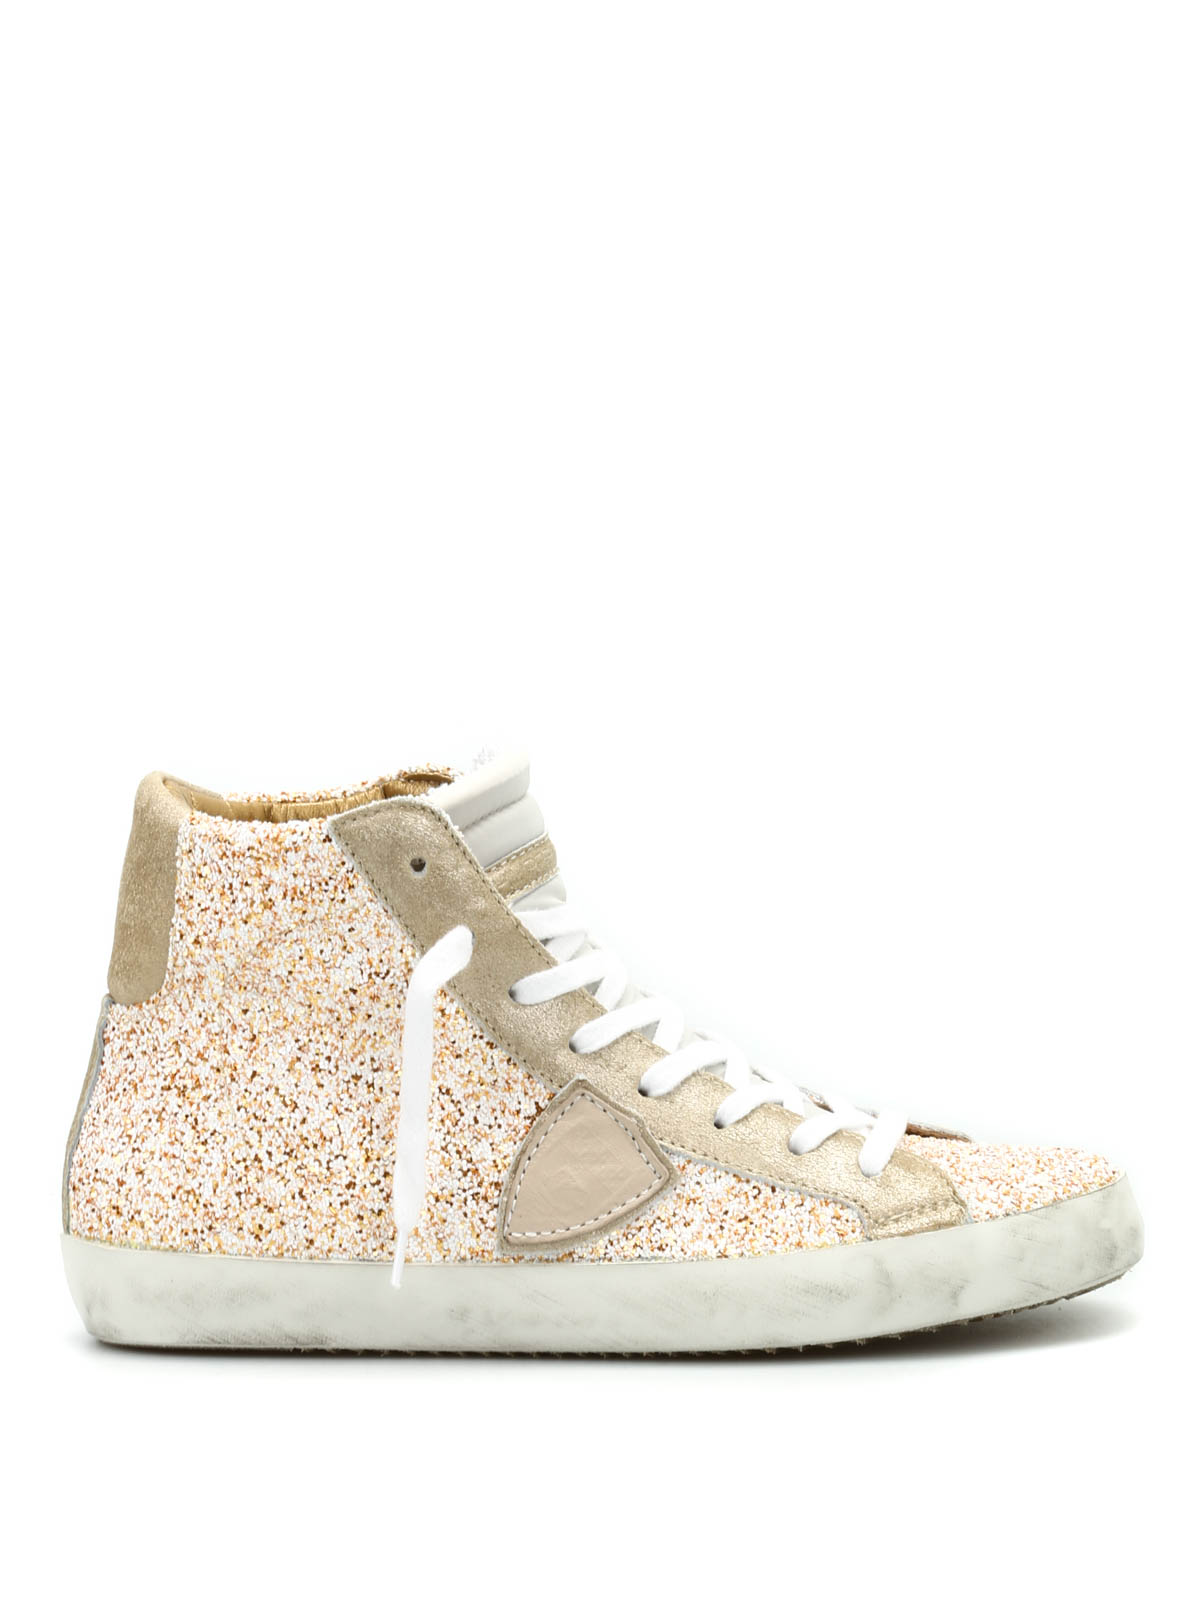 Damen Fur Clhd Gg16 Model Gold Philippe Sneaker xw1AnzqxS